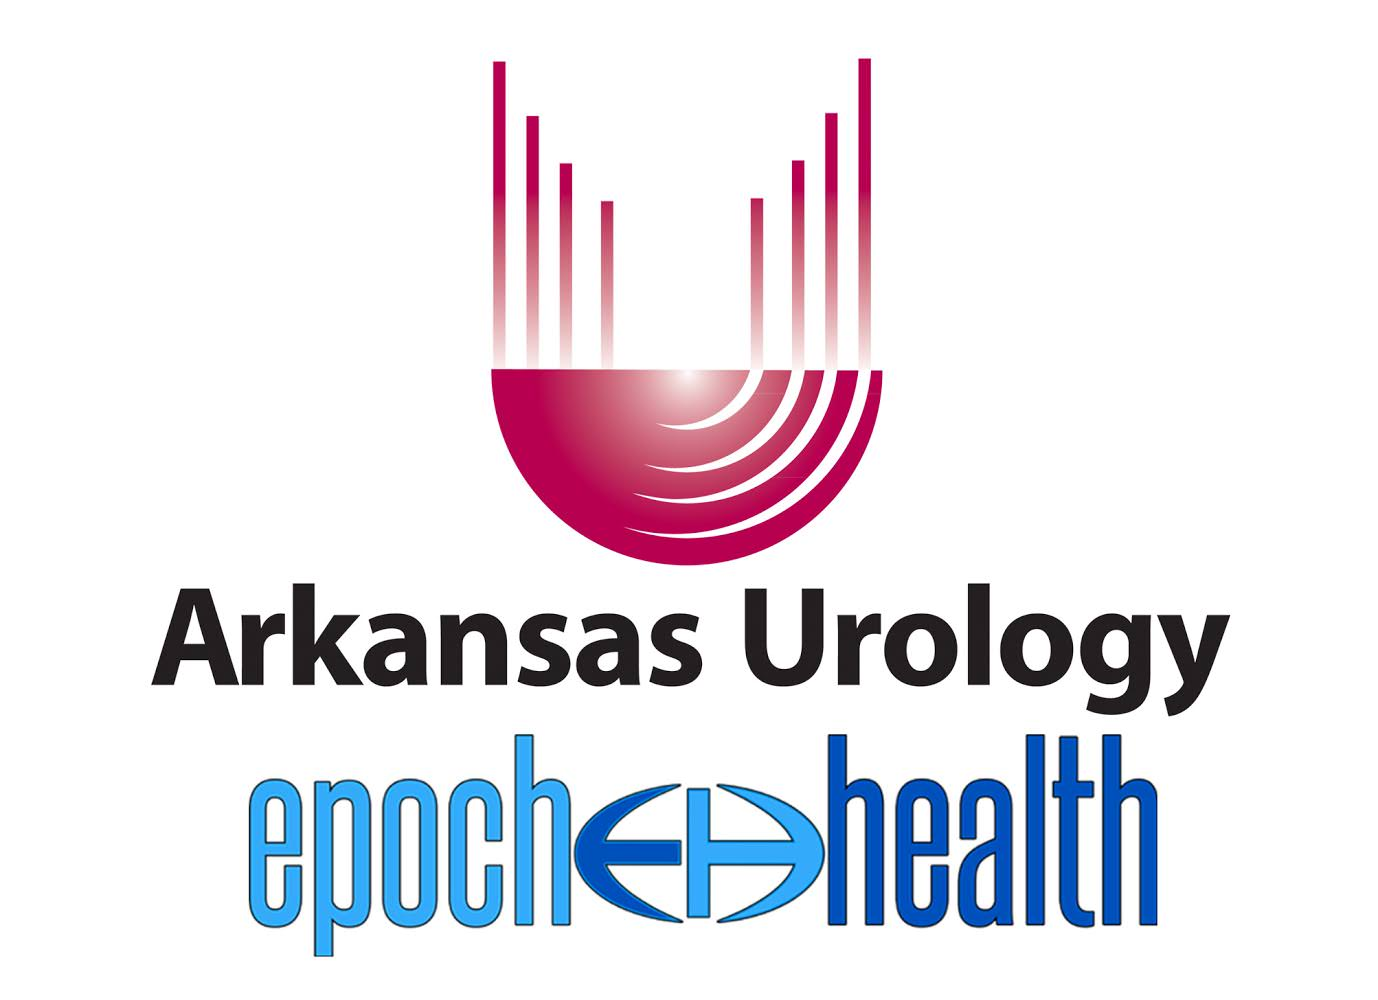 Arkansas Urology